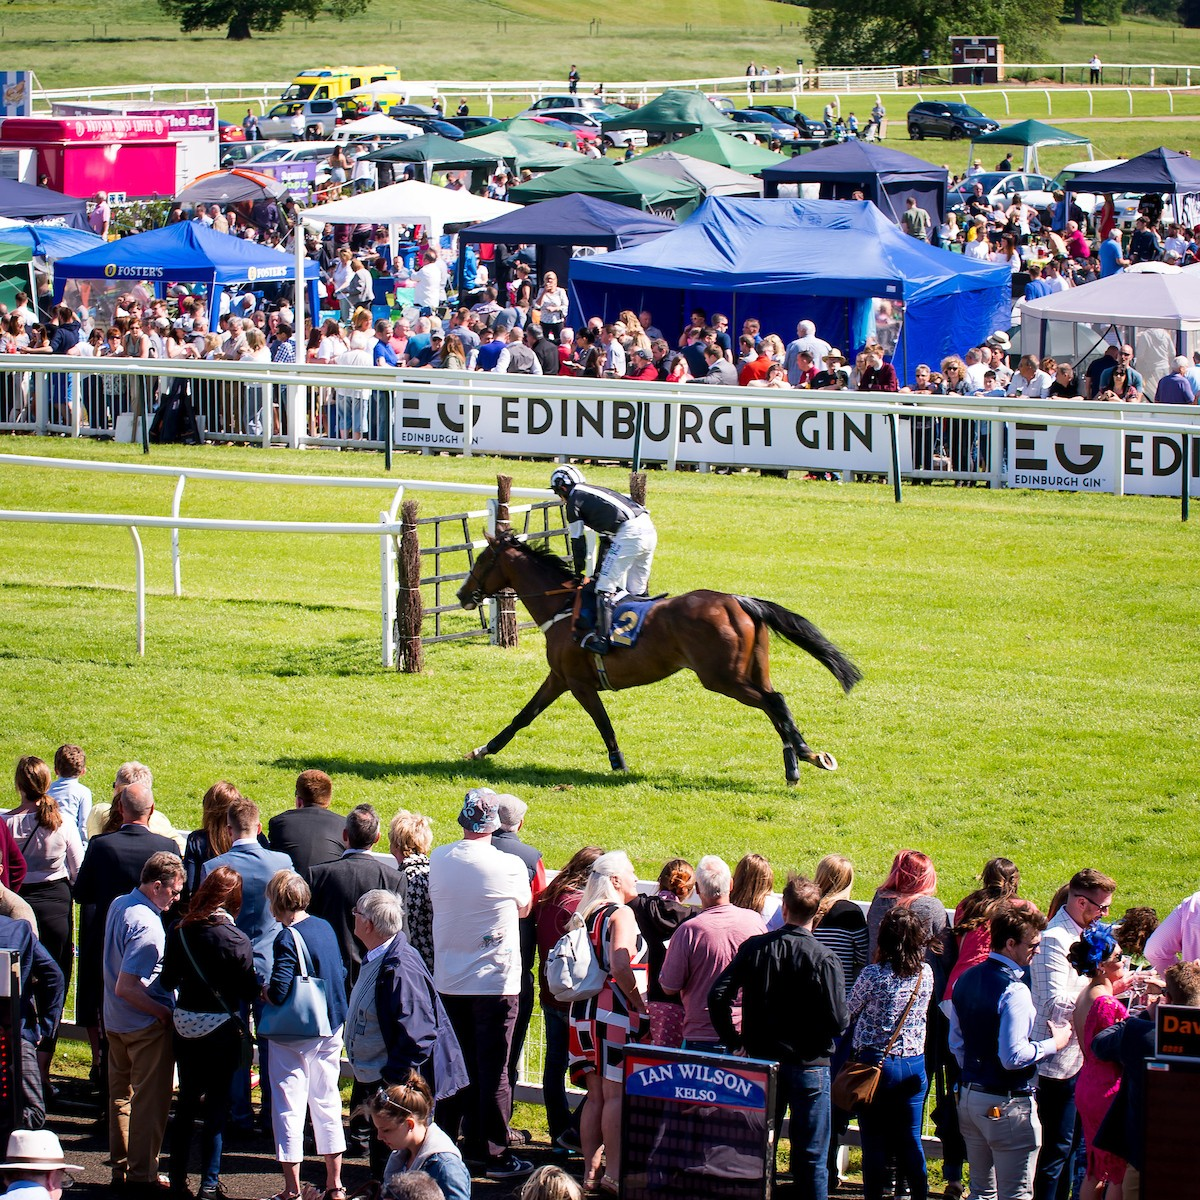 It's one of the highlights of the racing season – The Gold Cup!